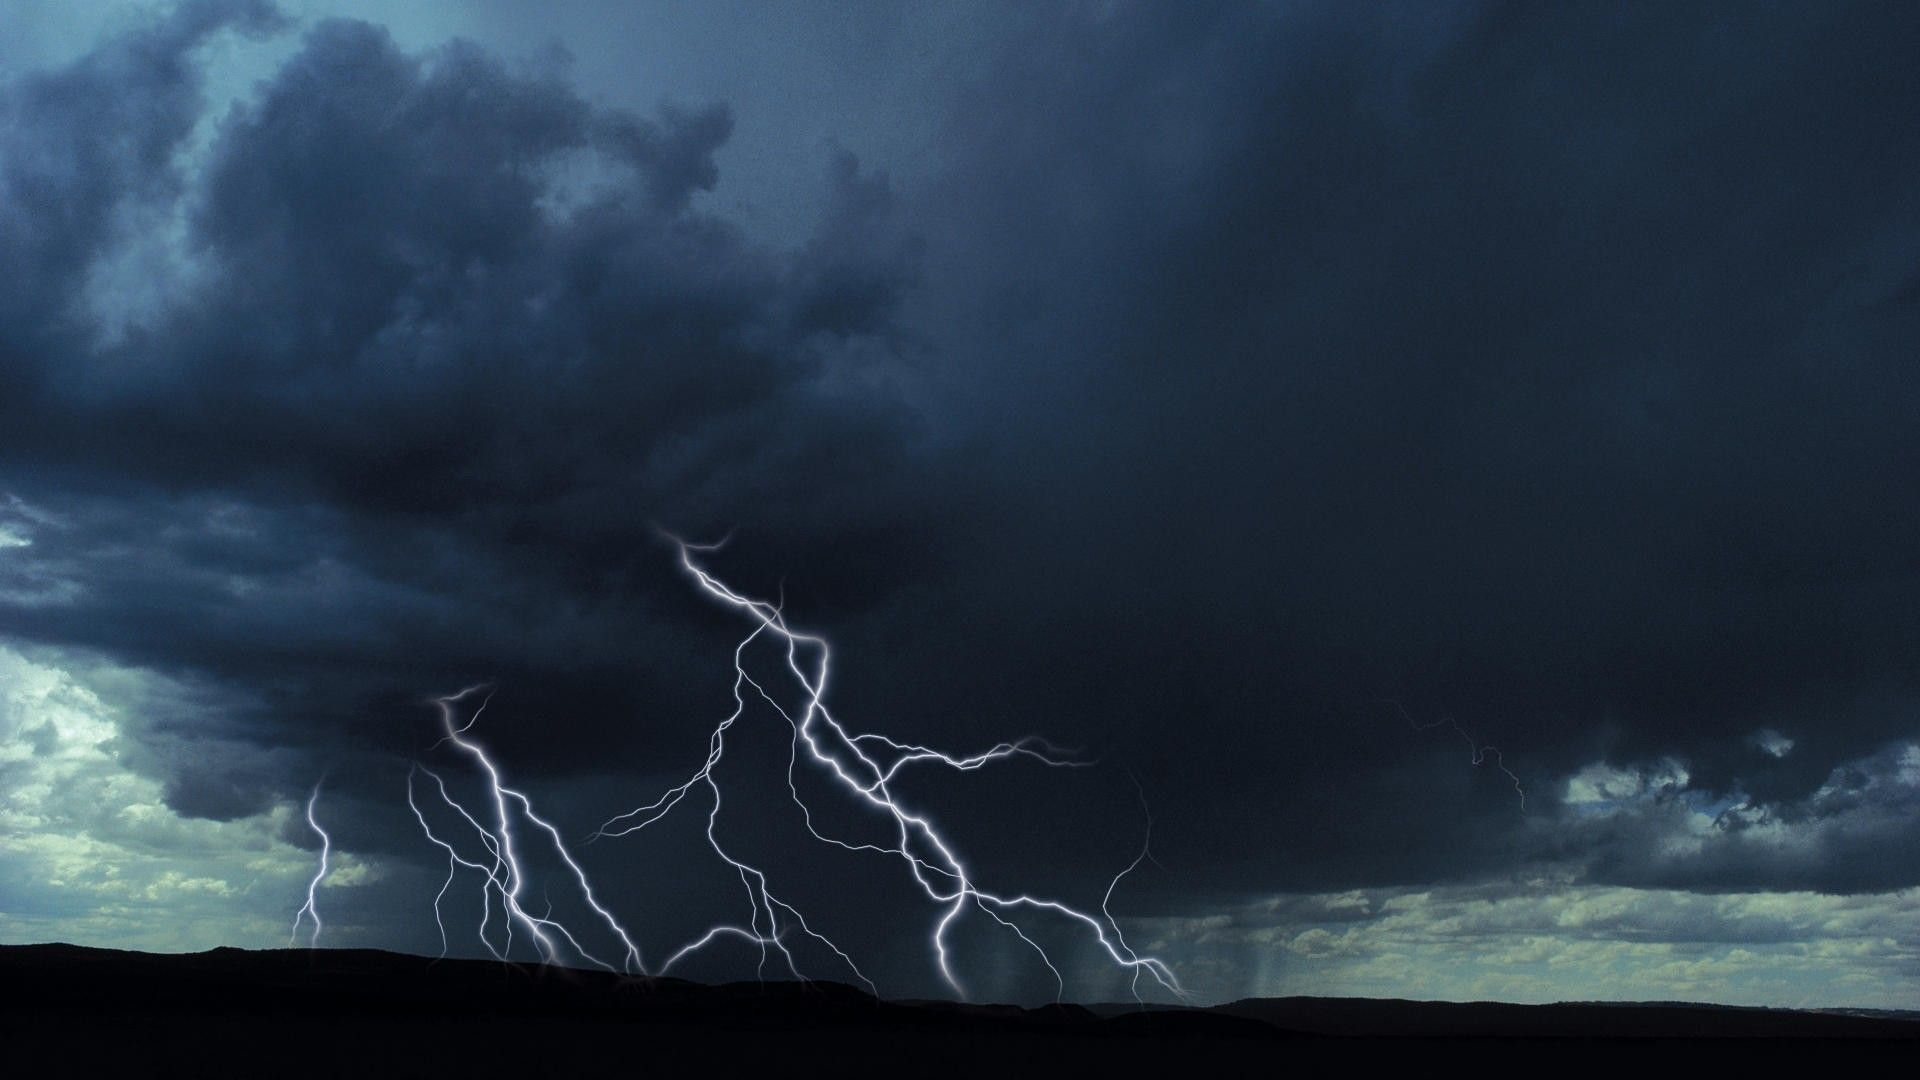 Free Thunderstorm Wallpapers - Wallpaper Cave